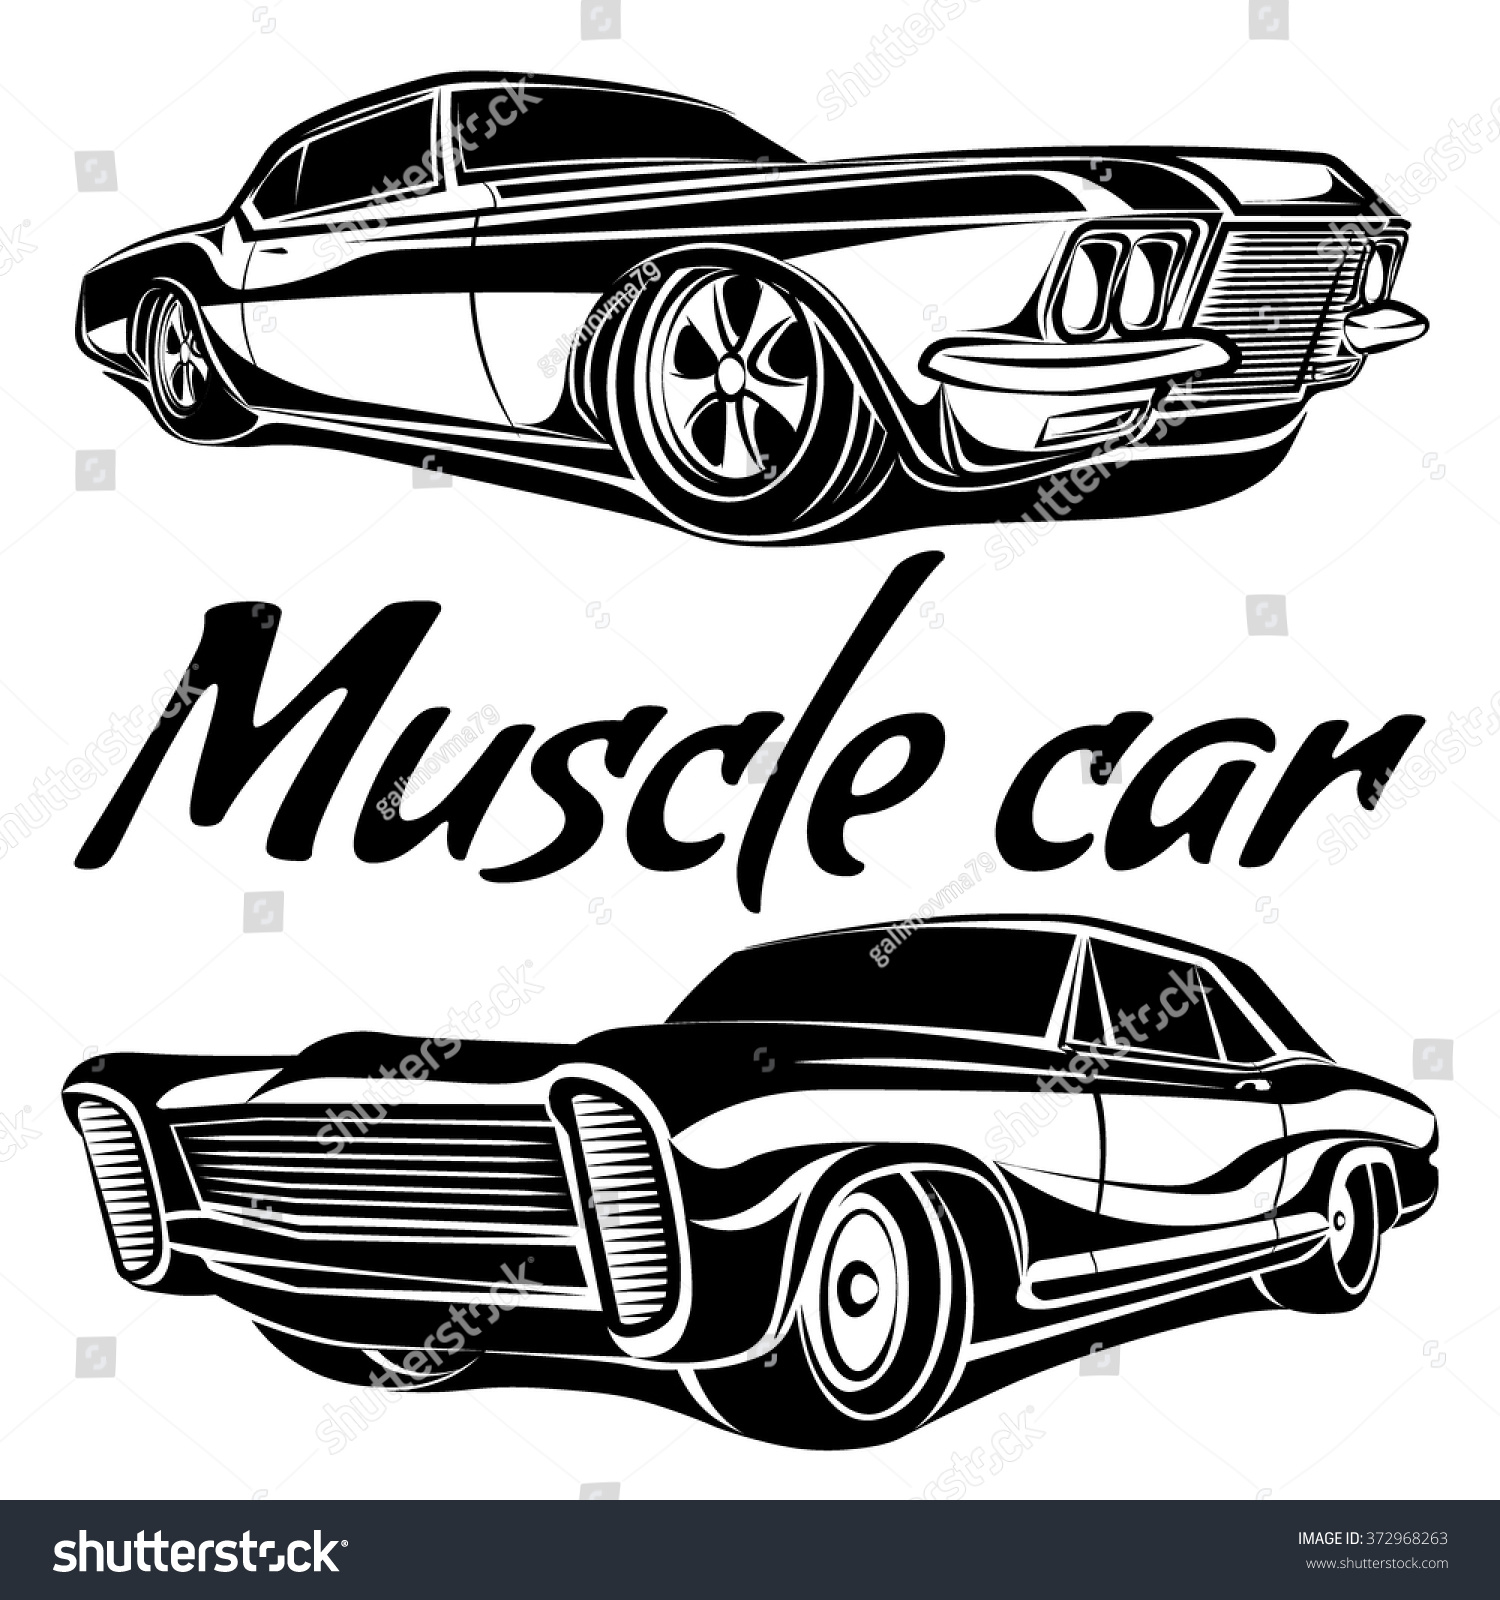 Muscle Car Vector Poster Illustrations Stock Vector